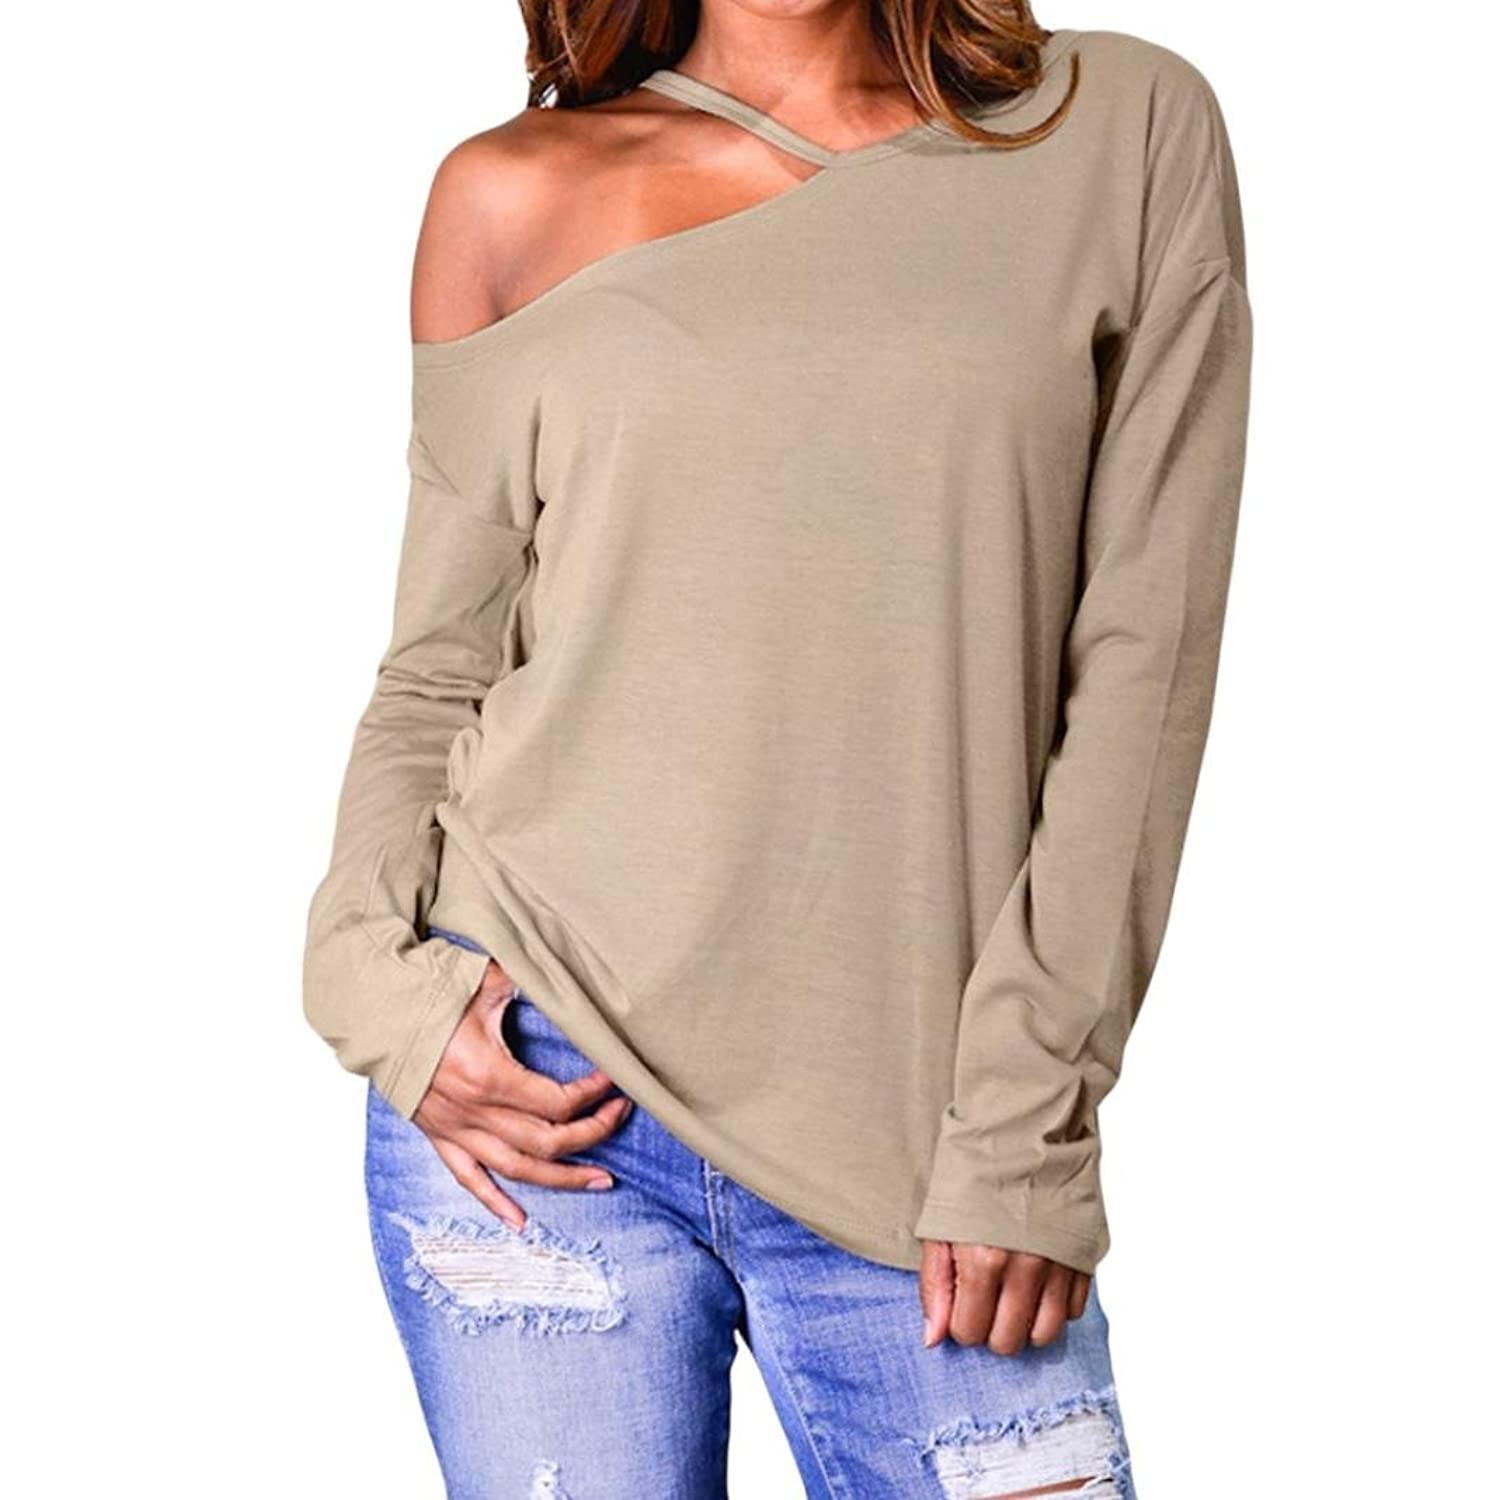 New Womens Top Shirt Festivals Women Sexy The Word Collar Solid Classics Comfort Elegance Slash Neck Bandage Slim Blouse Back To Search Resultswomen's Clothing